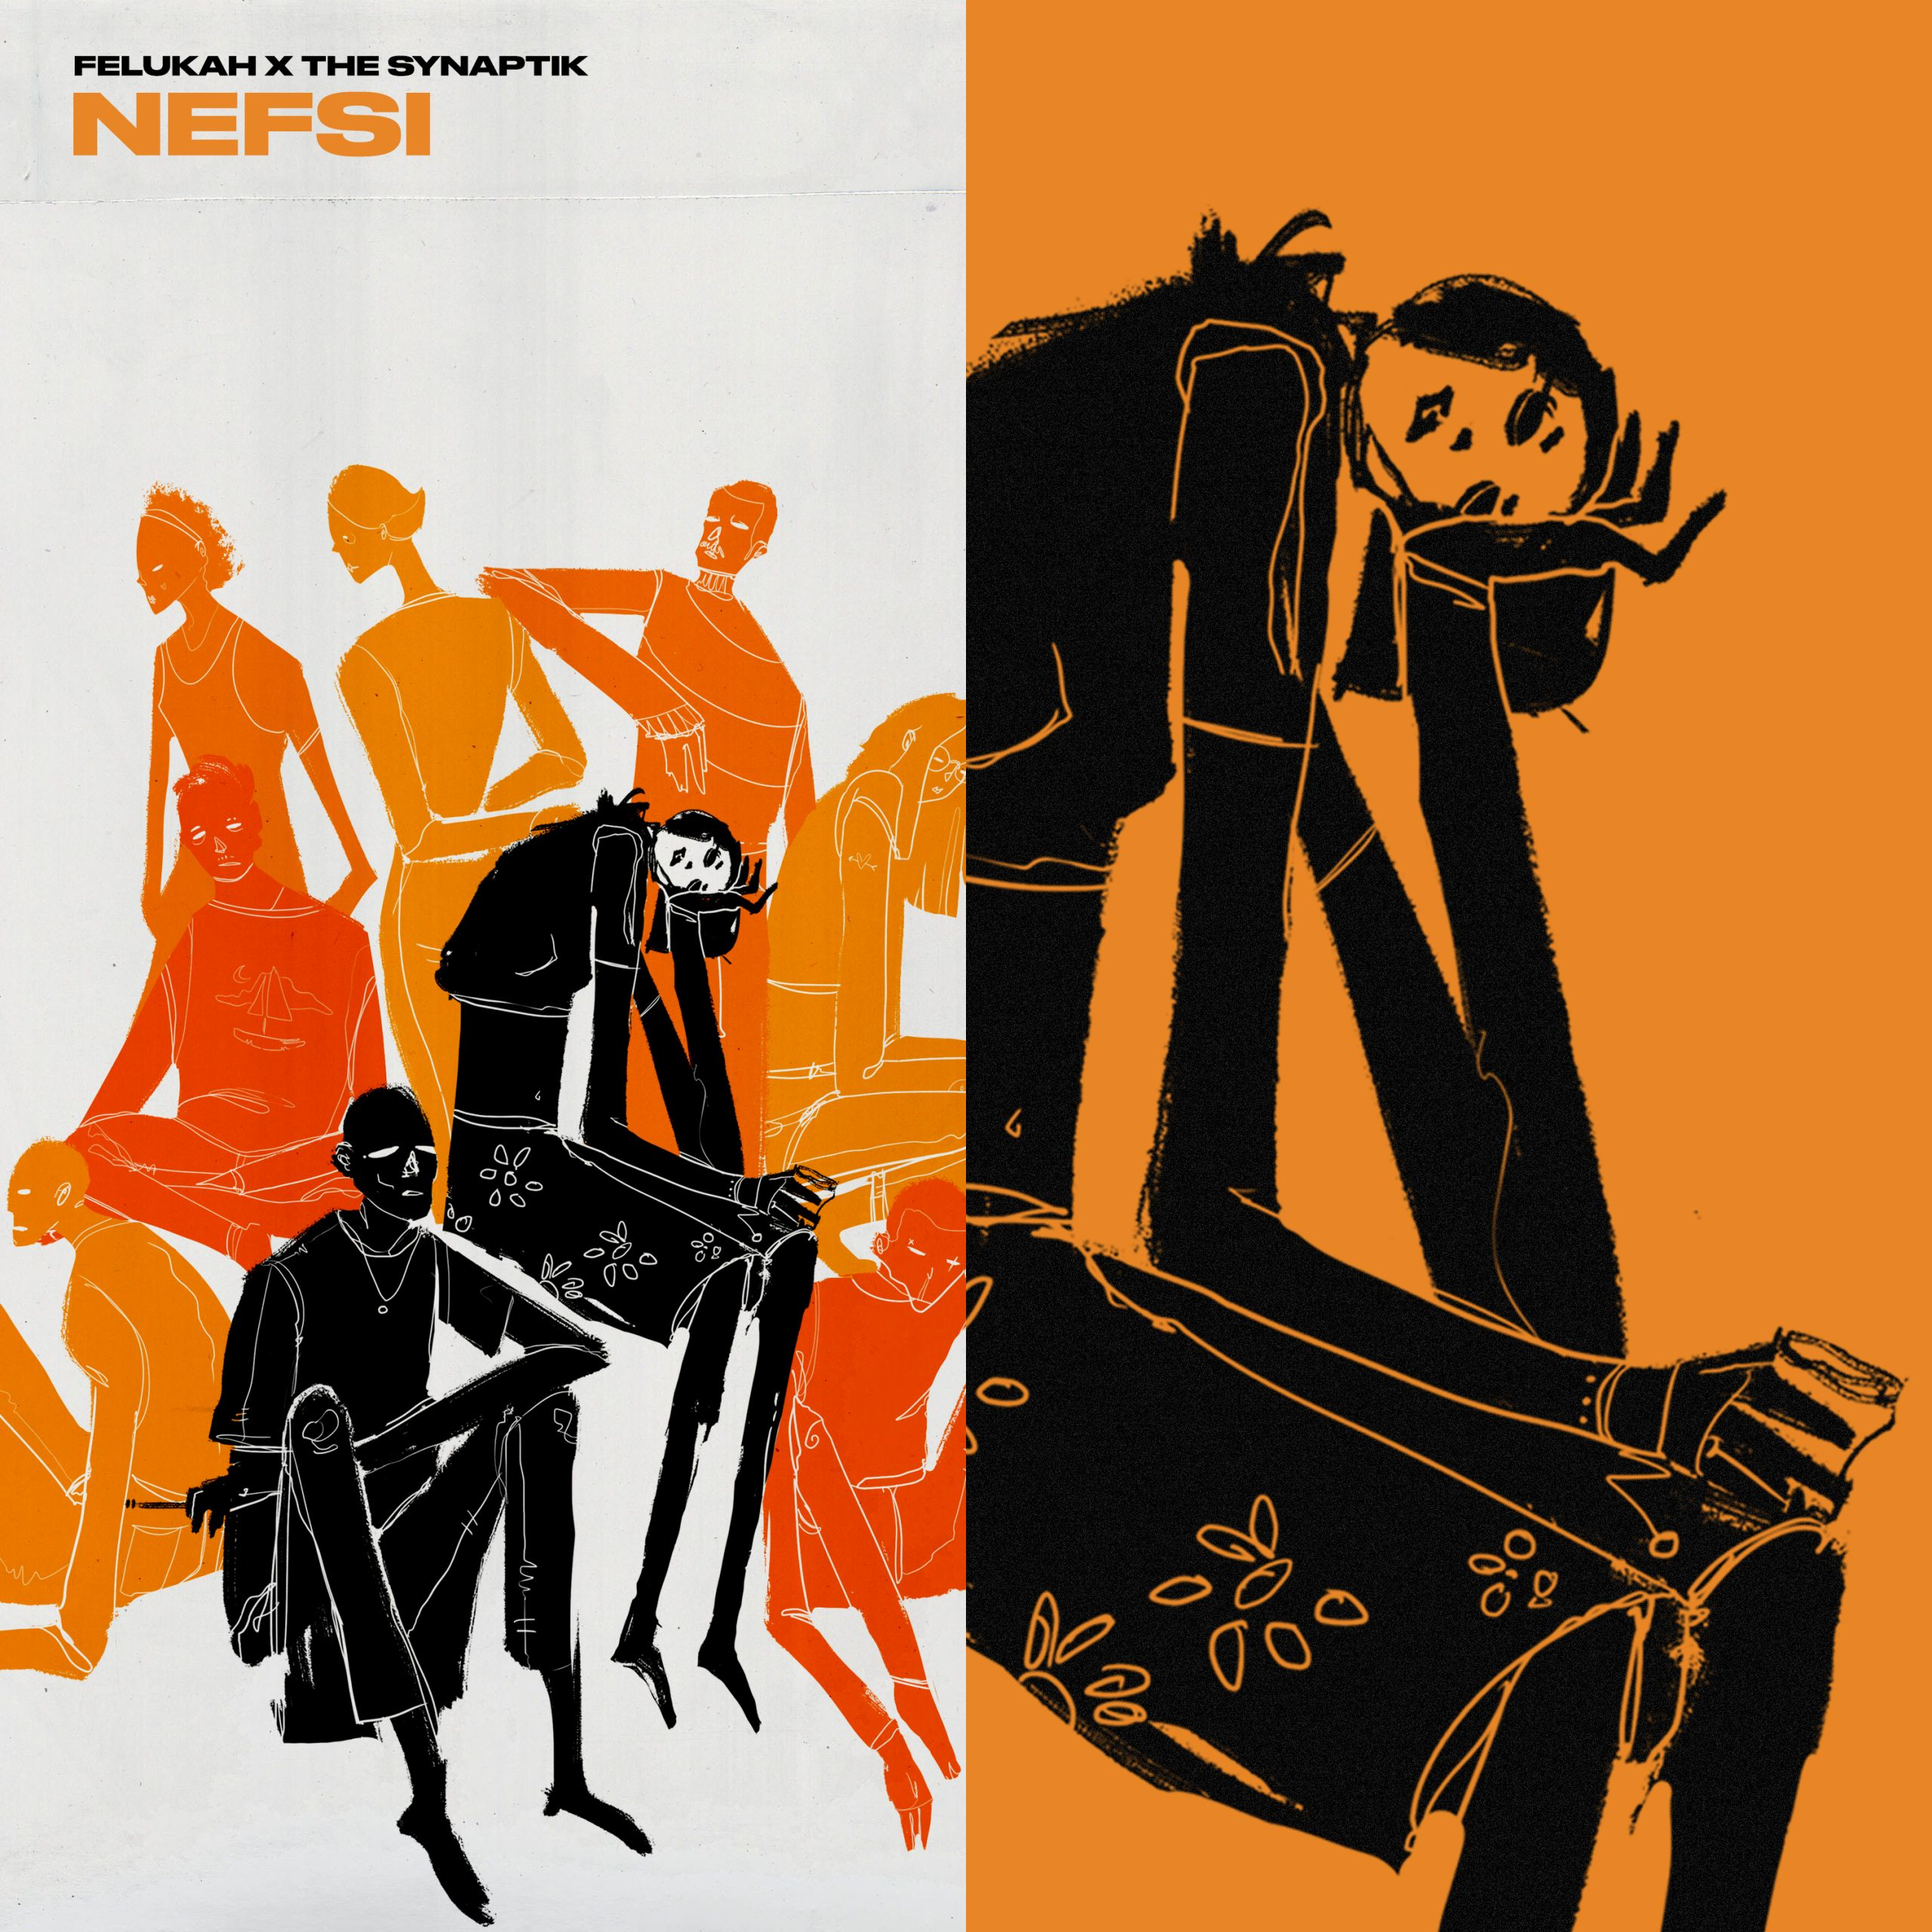 Graphic artwork for the single Nefsi comprising black, orange and red figures